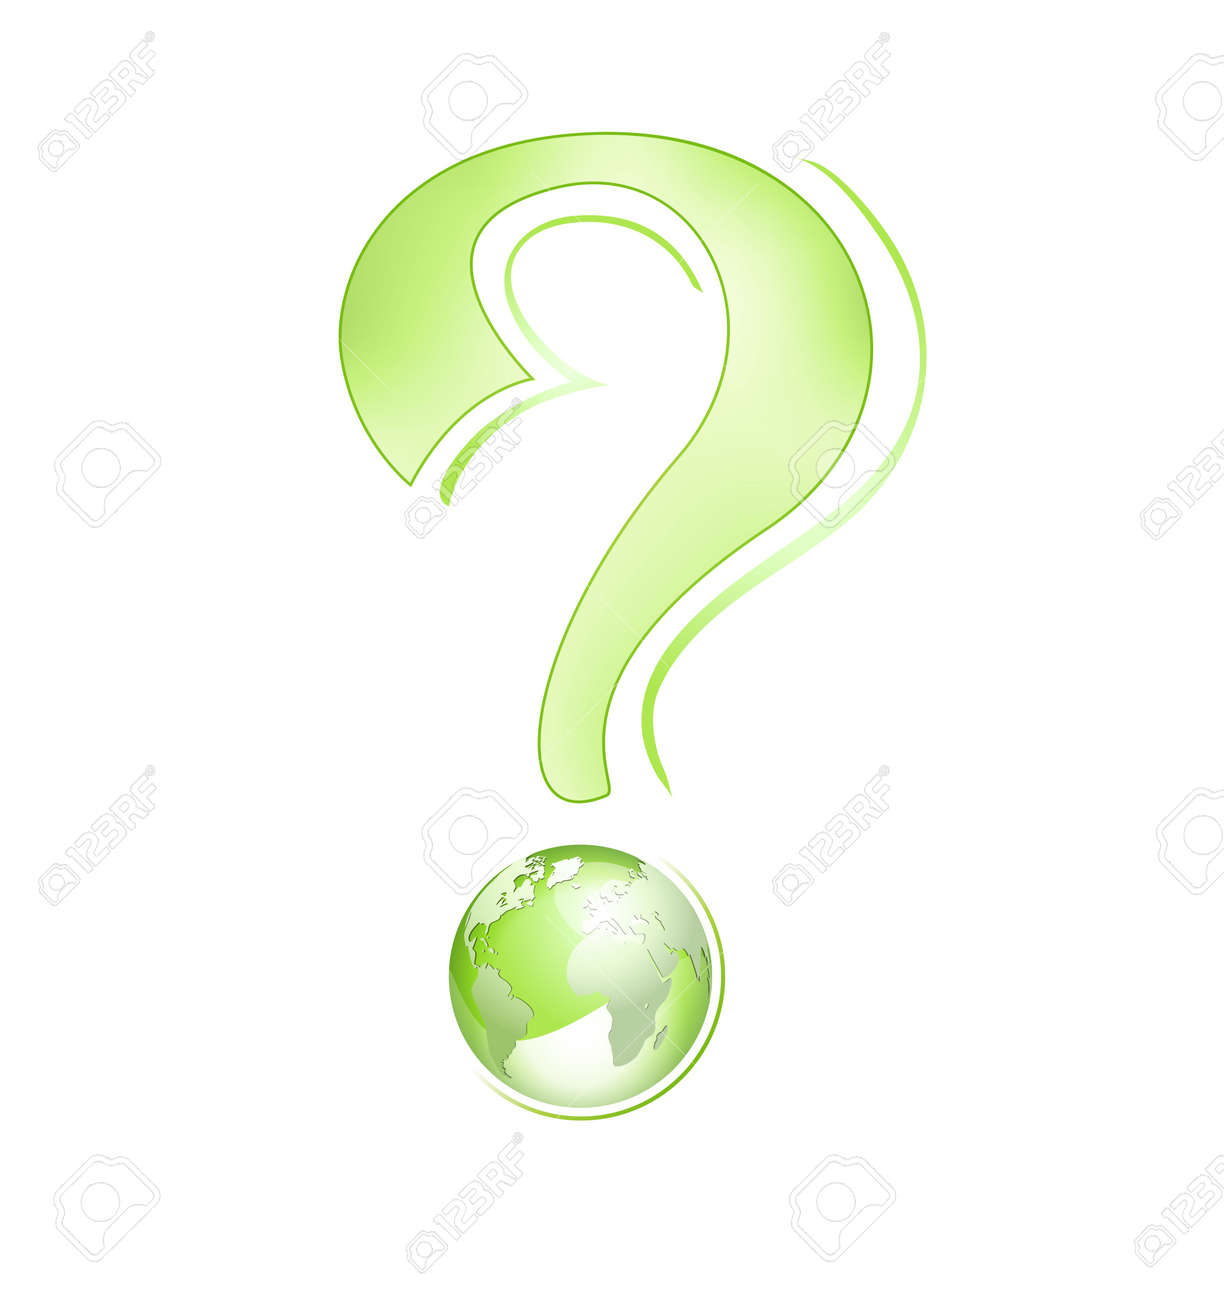 Abstract business globe design - environment concept with green globe and question mark against white background - vector illustration Stock Vector - 10972302